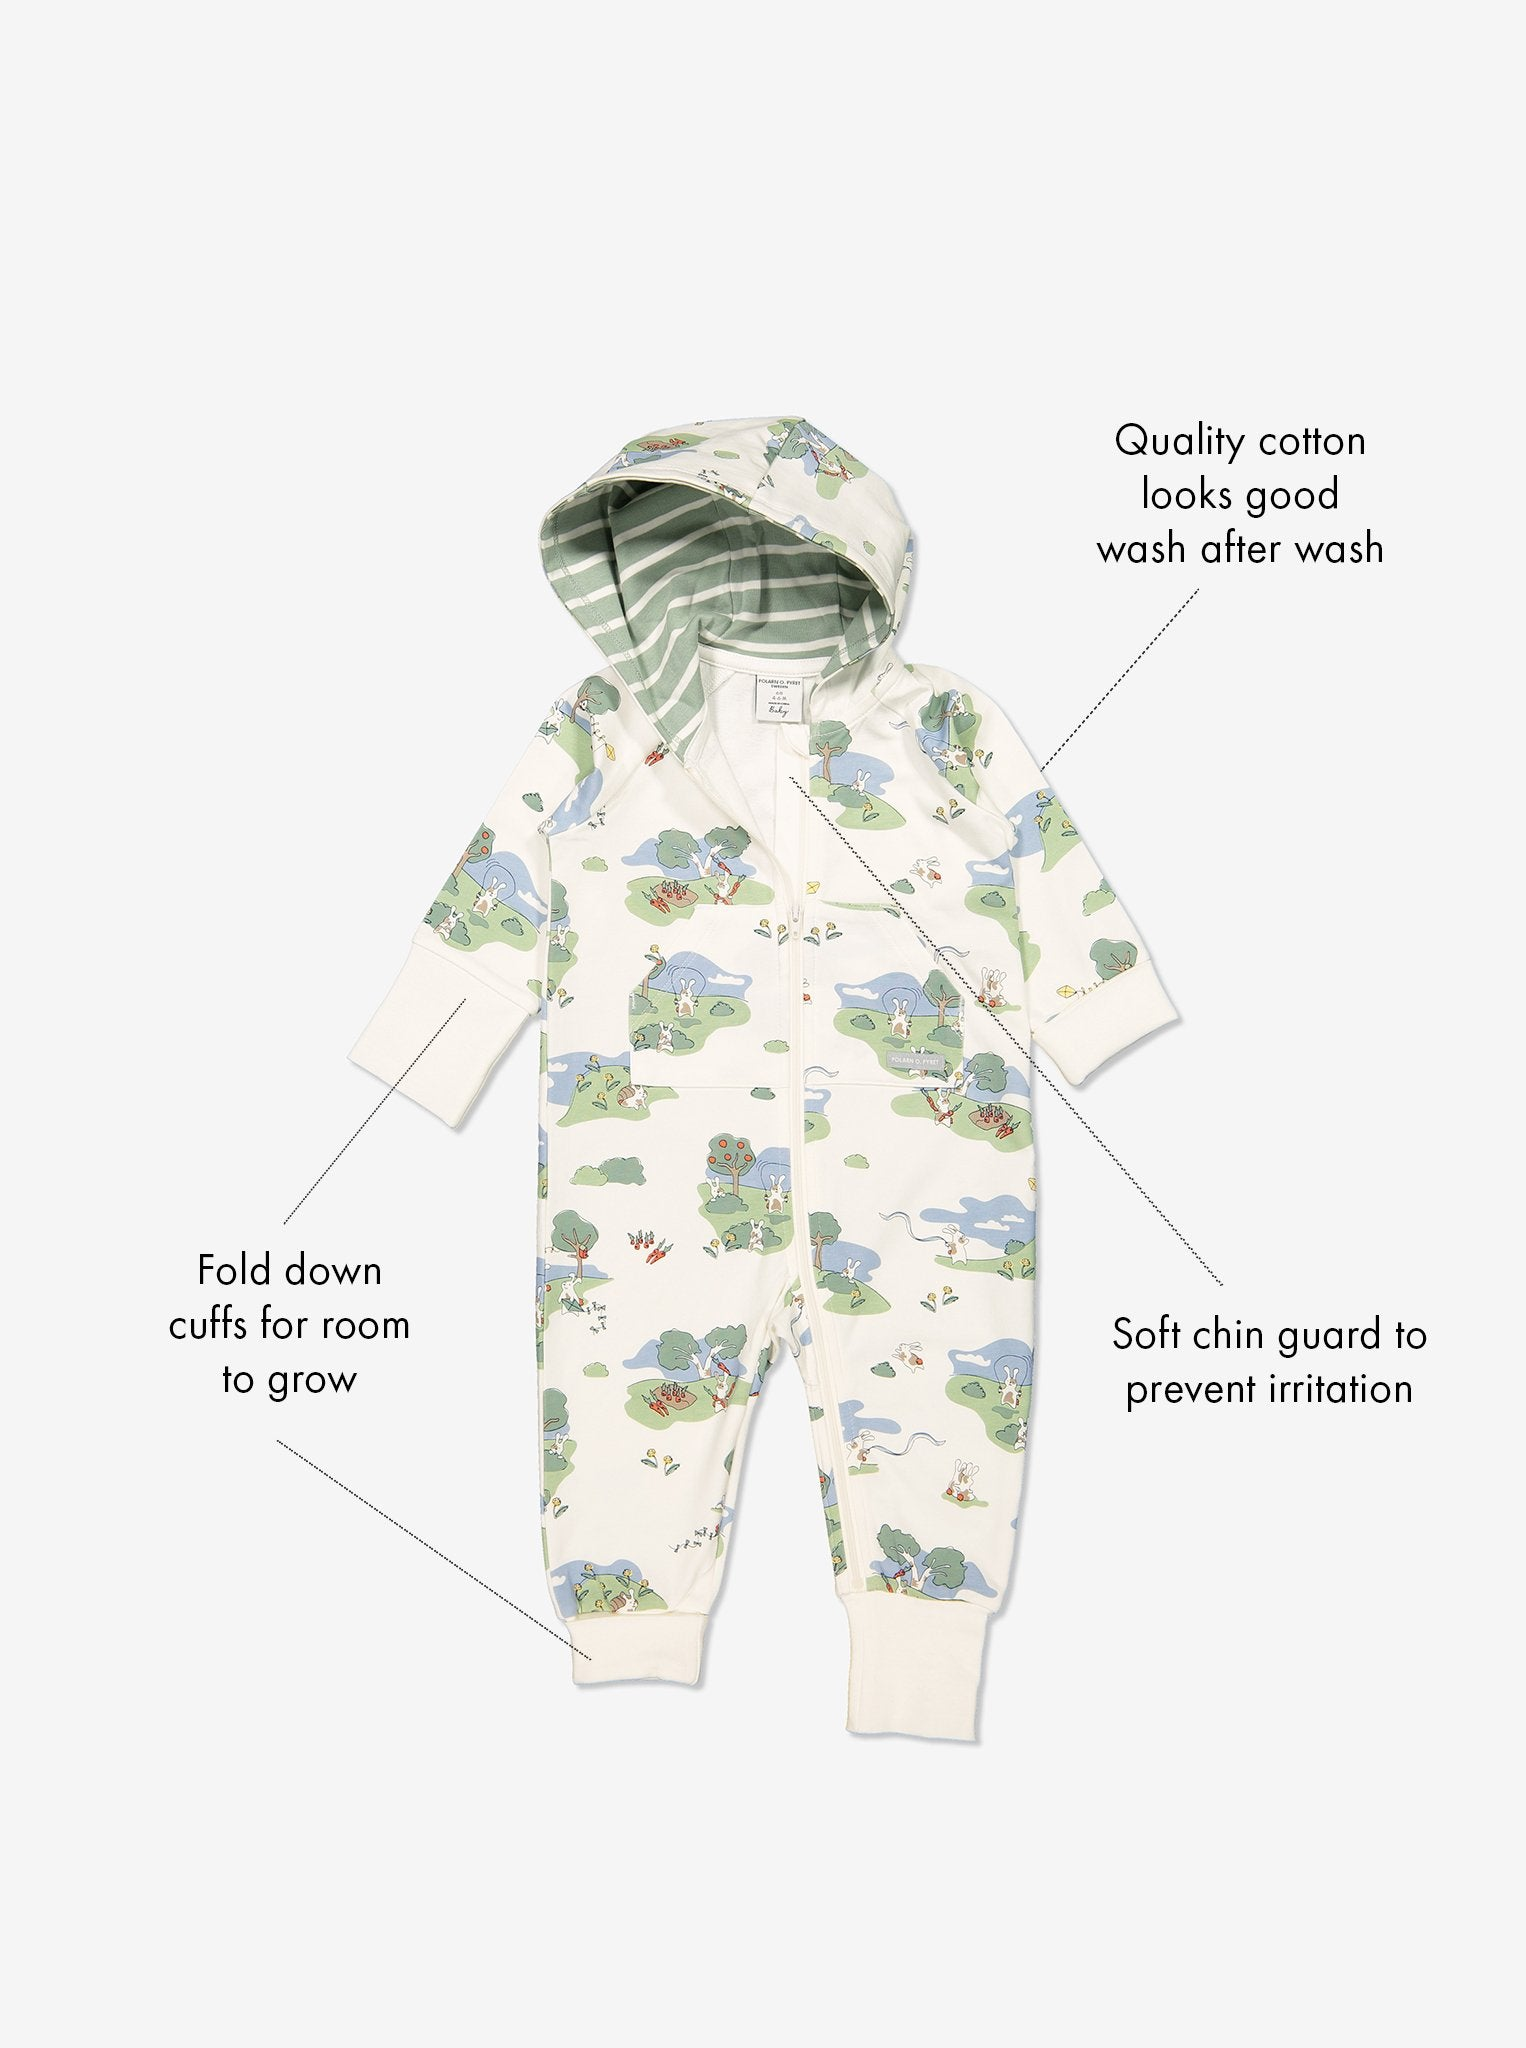 GOTS organic cotton baby all-in-one in a playful bunny print with text labels shown on the sides